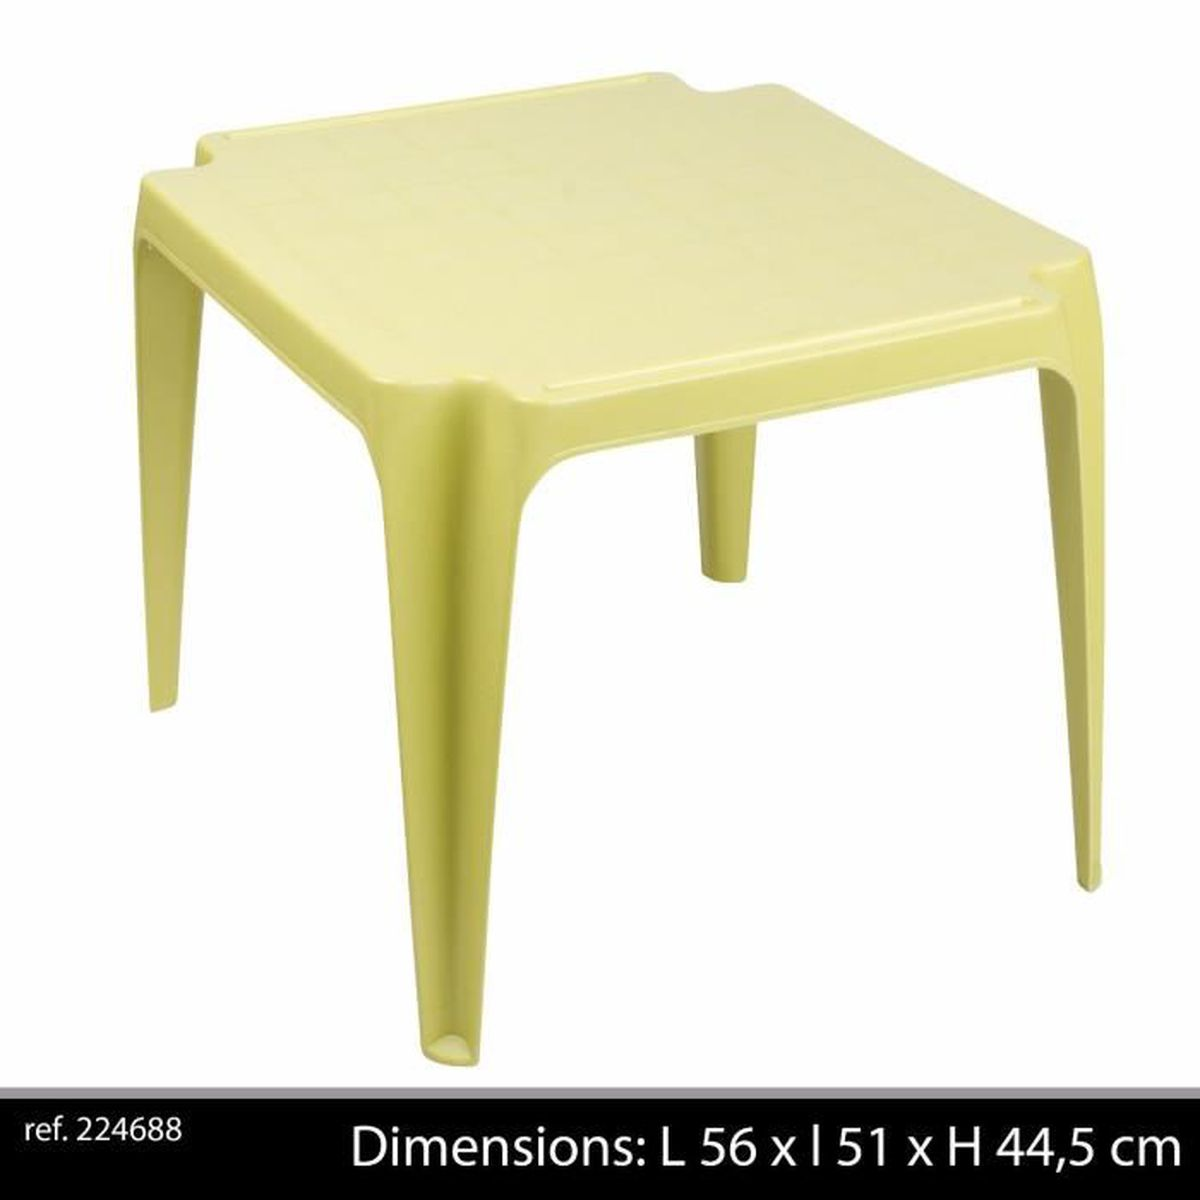 table basse ou de jeu pour enfant pour camping salon chambre jardin interieur ou exterieur. Black Bedroom Furniture Sets. Home Design Ideas